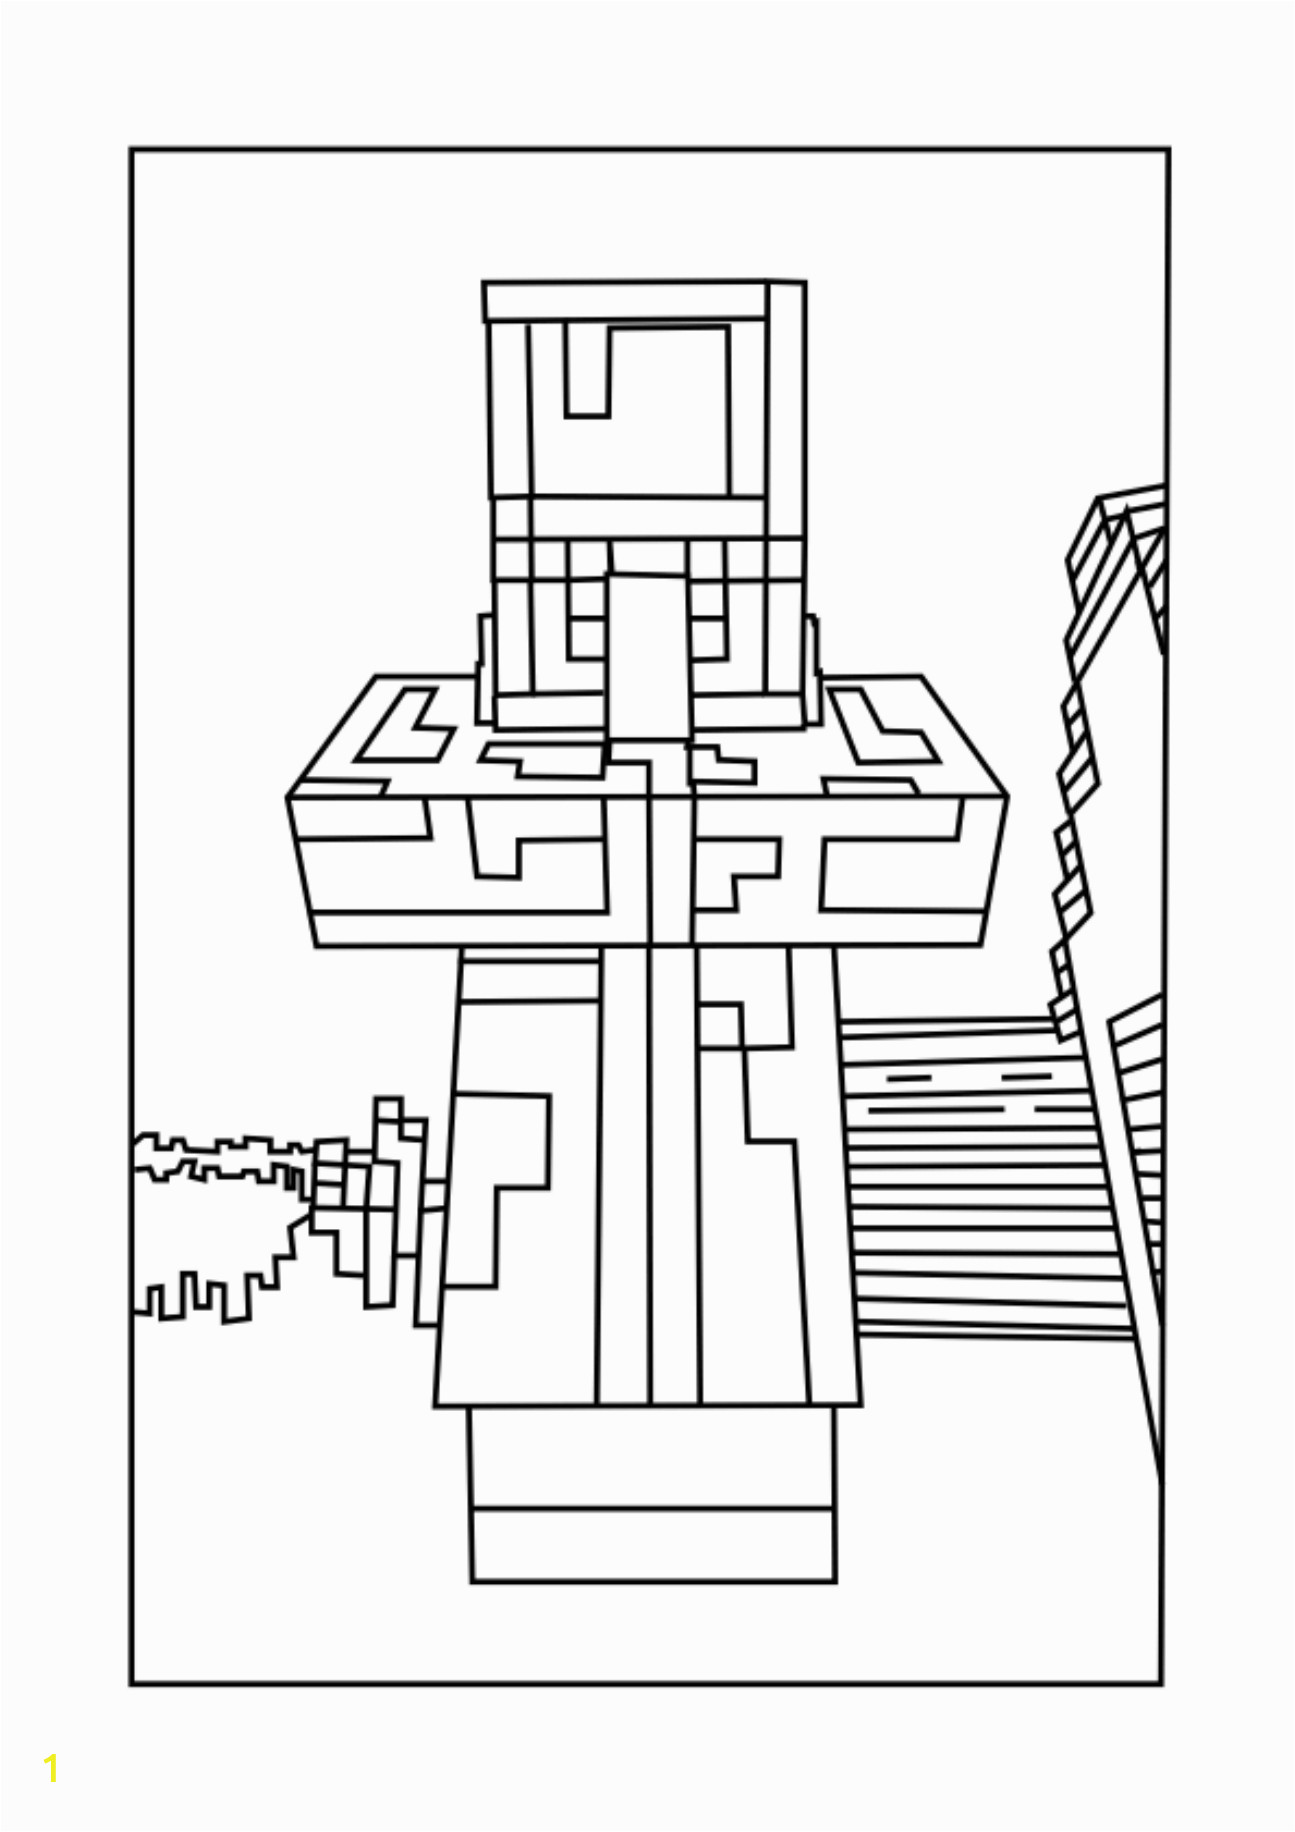 40f2a69b152c87eb054cce cd74e villager chicken minecraft coloring pages free printable 1295 1832